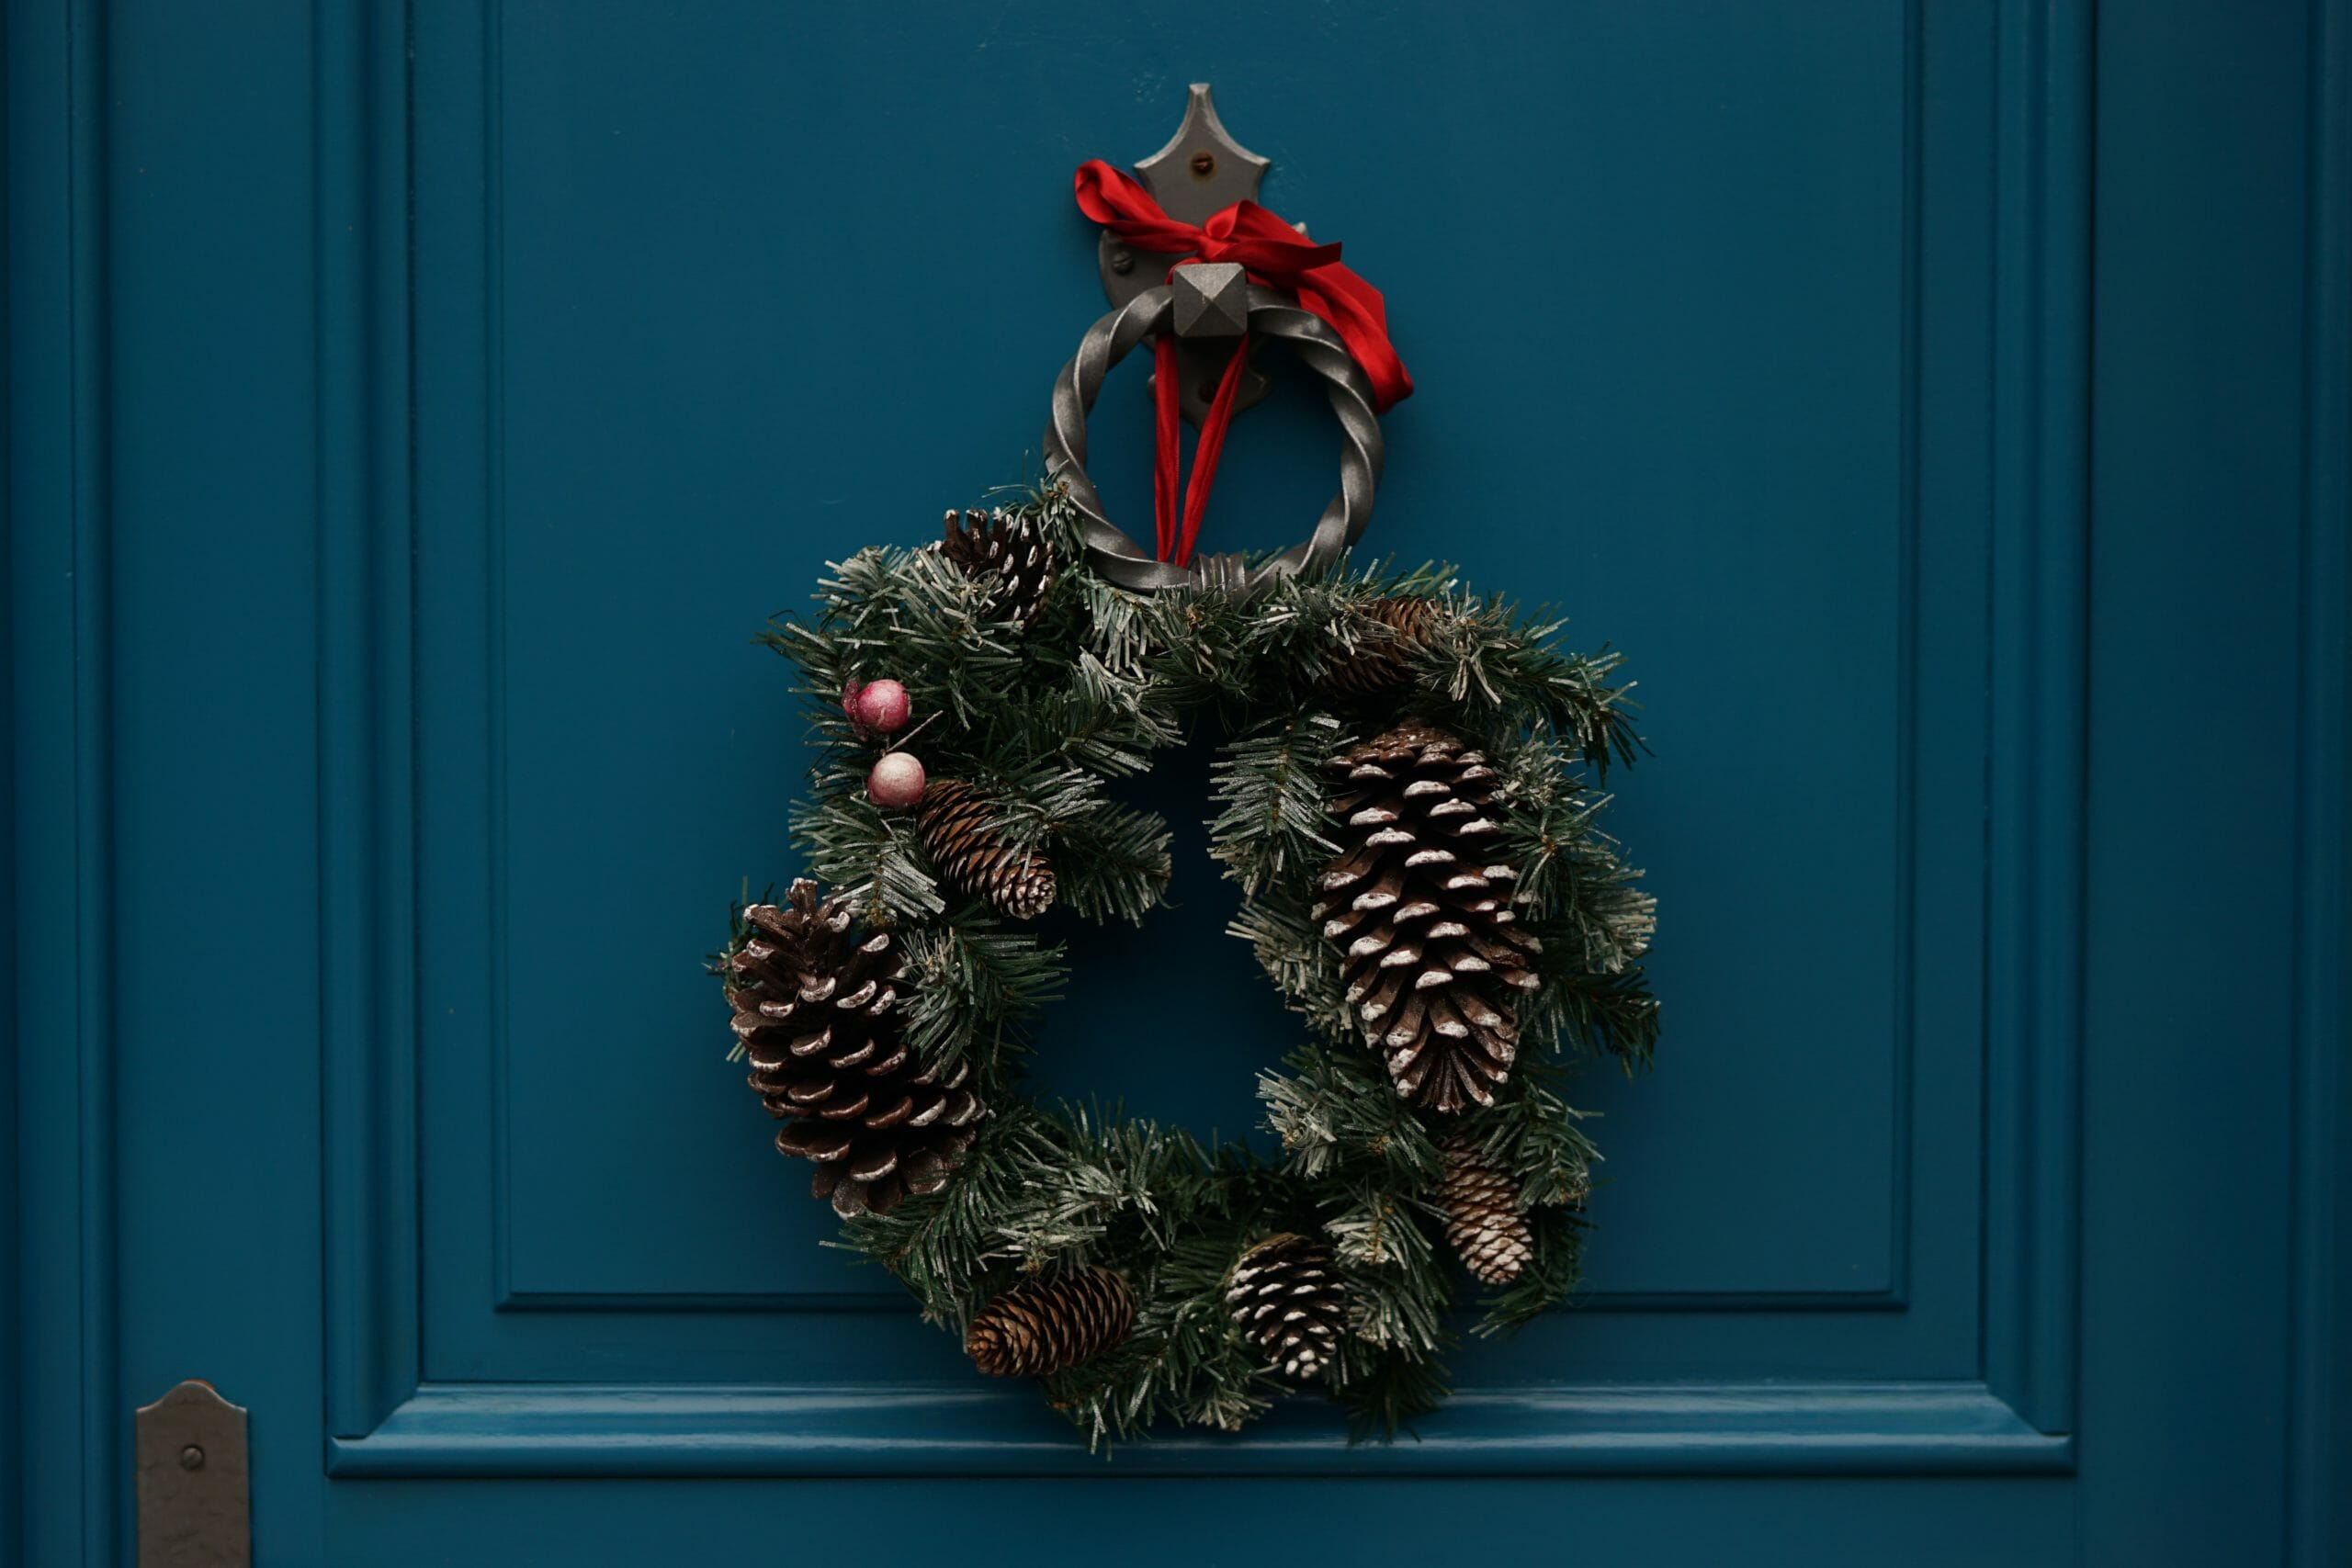 A Christmas wreath hanging on a teal door.